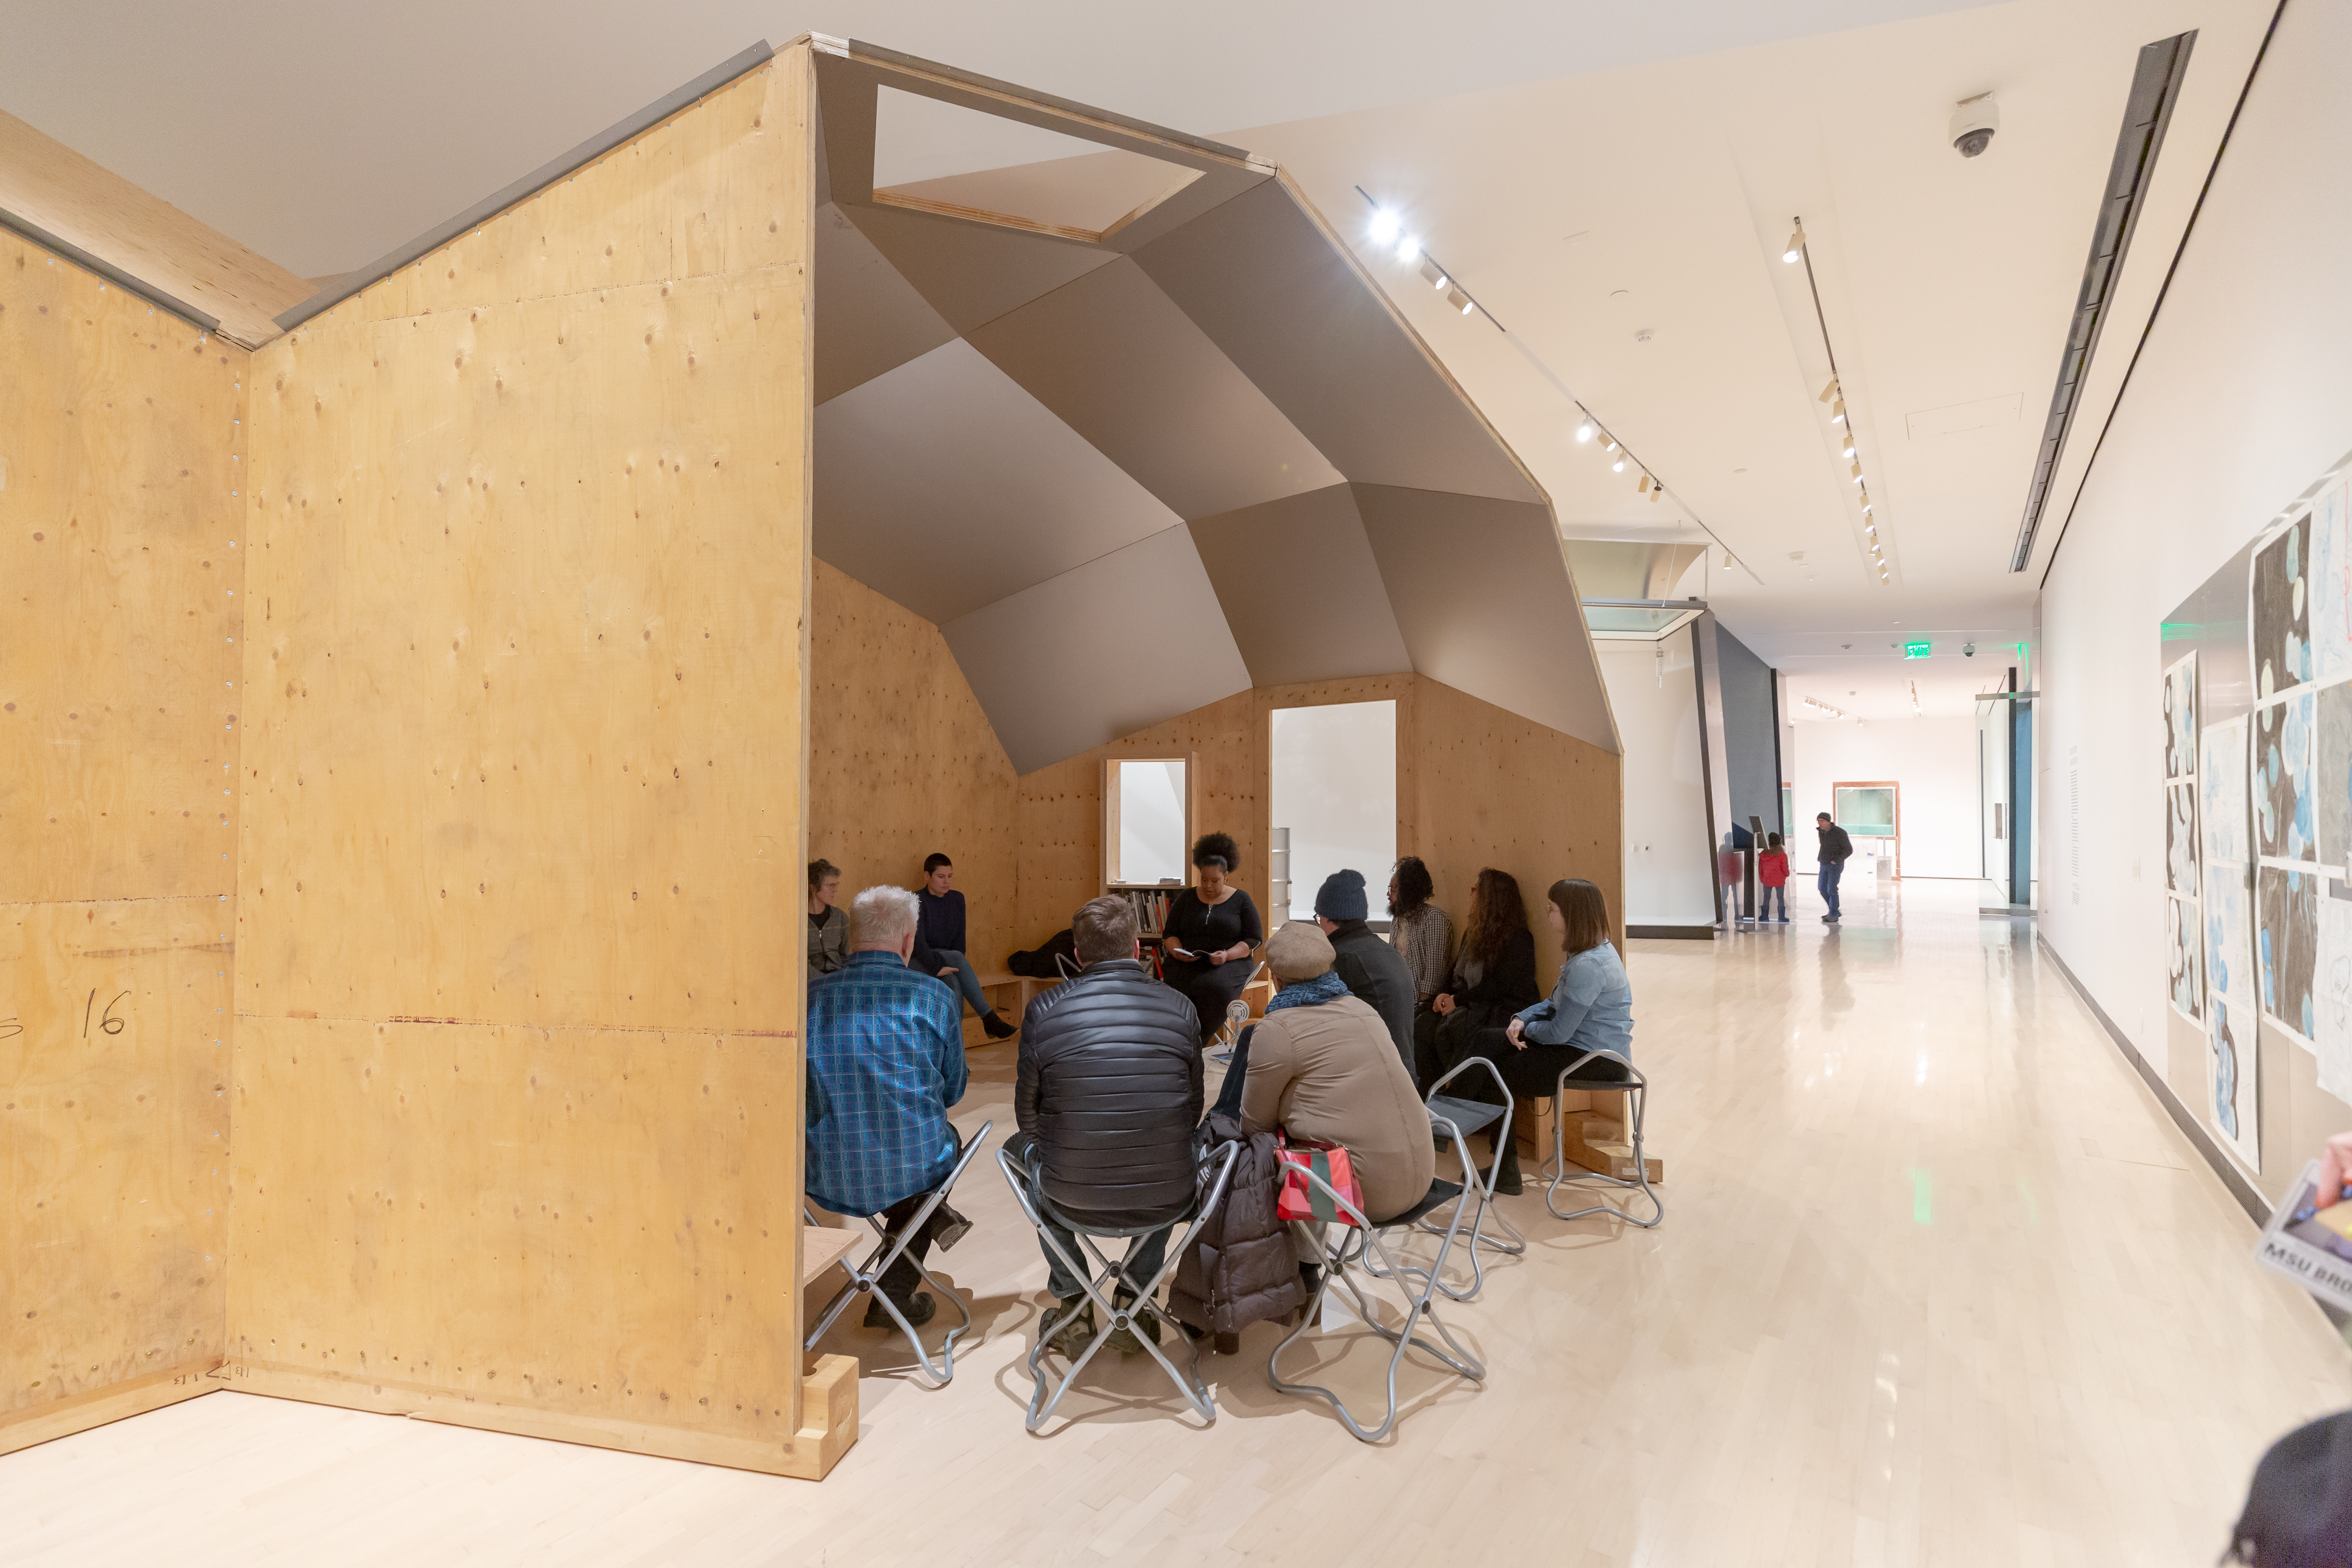 <i>Oscar Tuazon: Water School</i>, installation view at the Eli and Edythe Broad Art Museum at Michigan State University, 2019. Photo: Aaron Word/MSU Broad